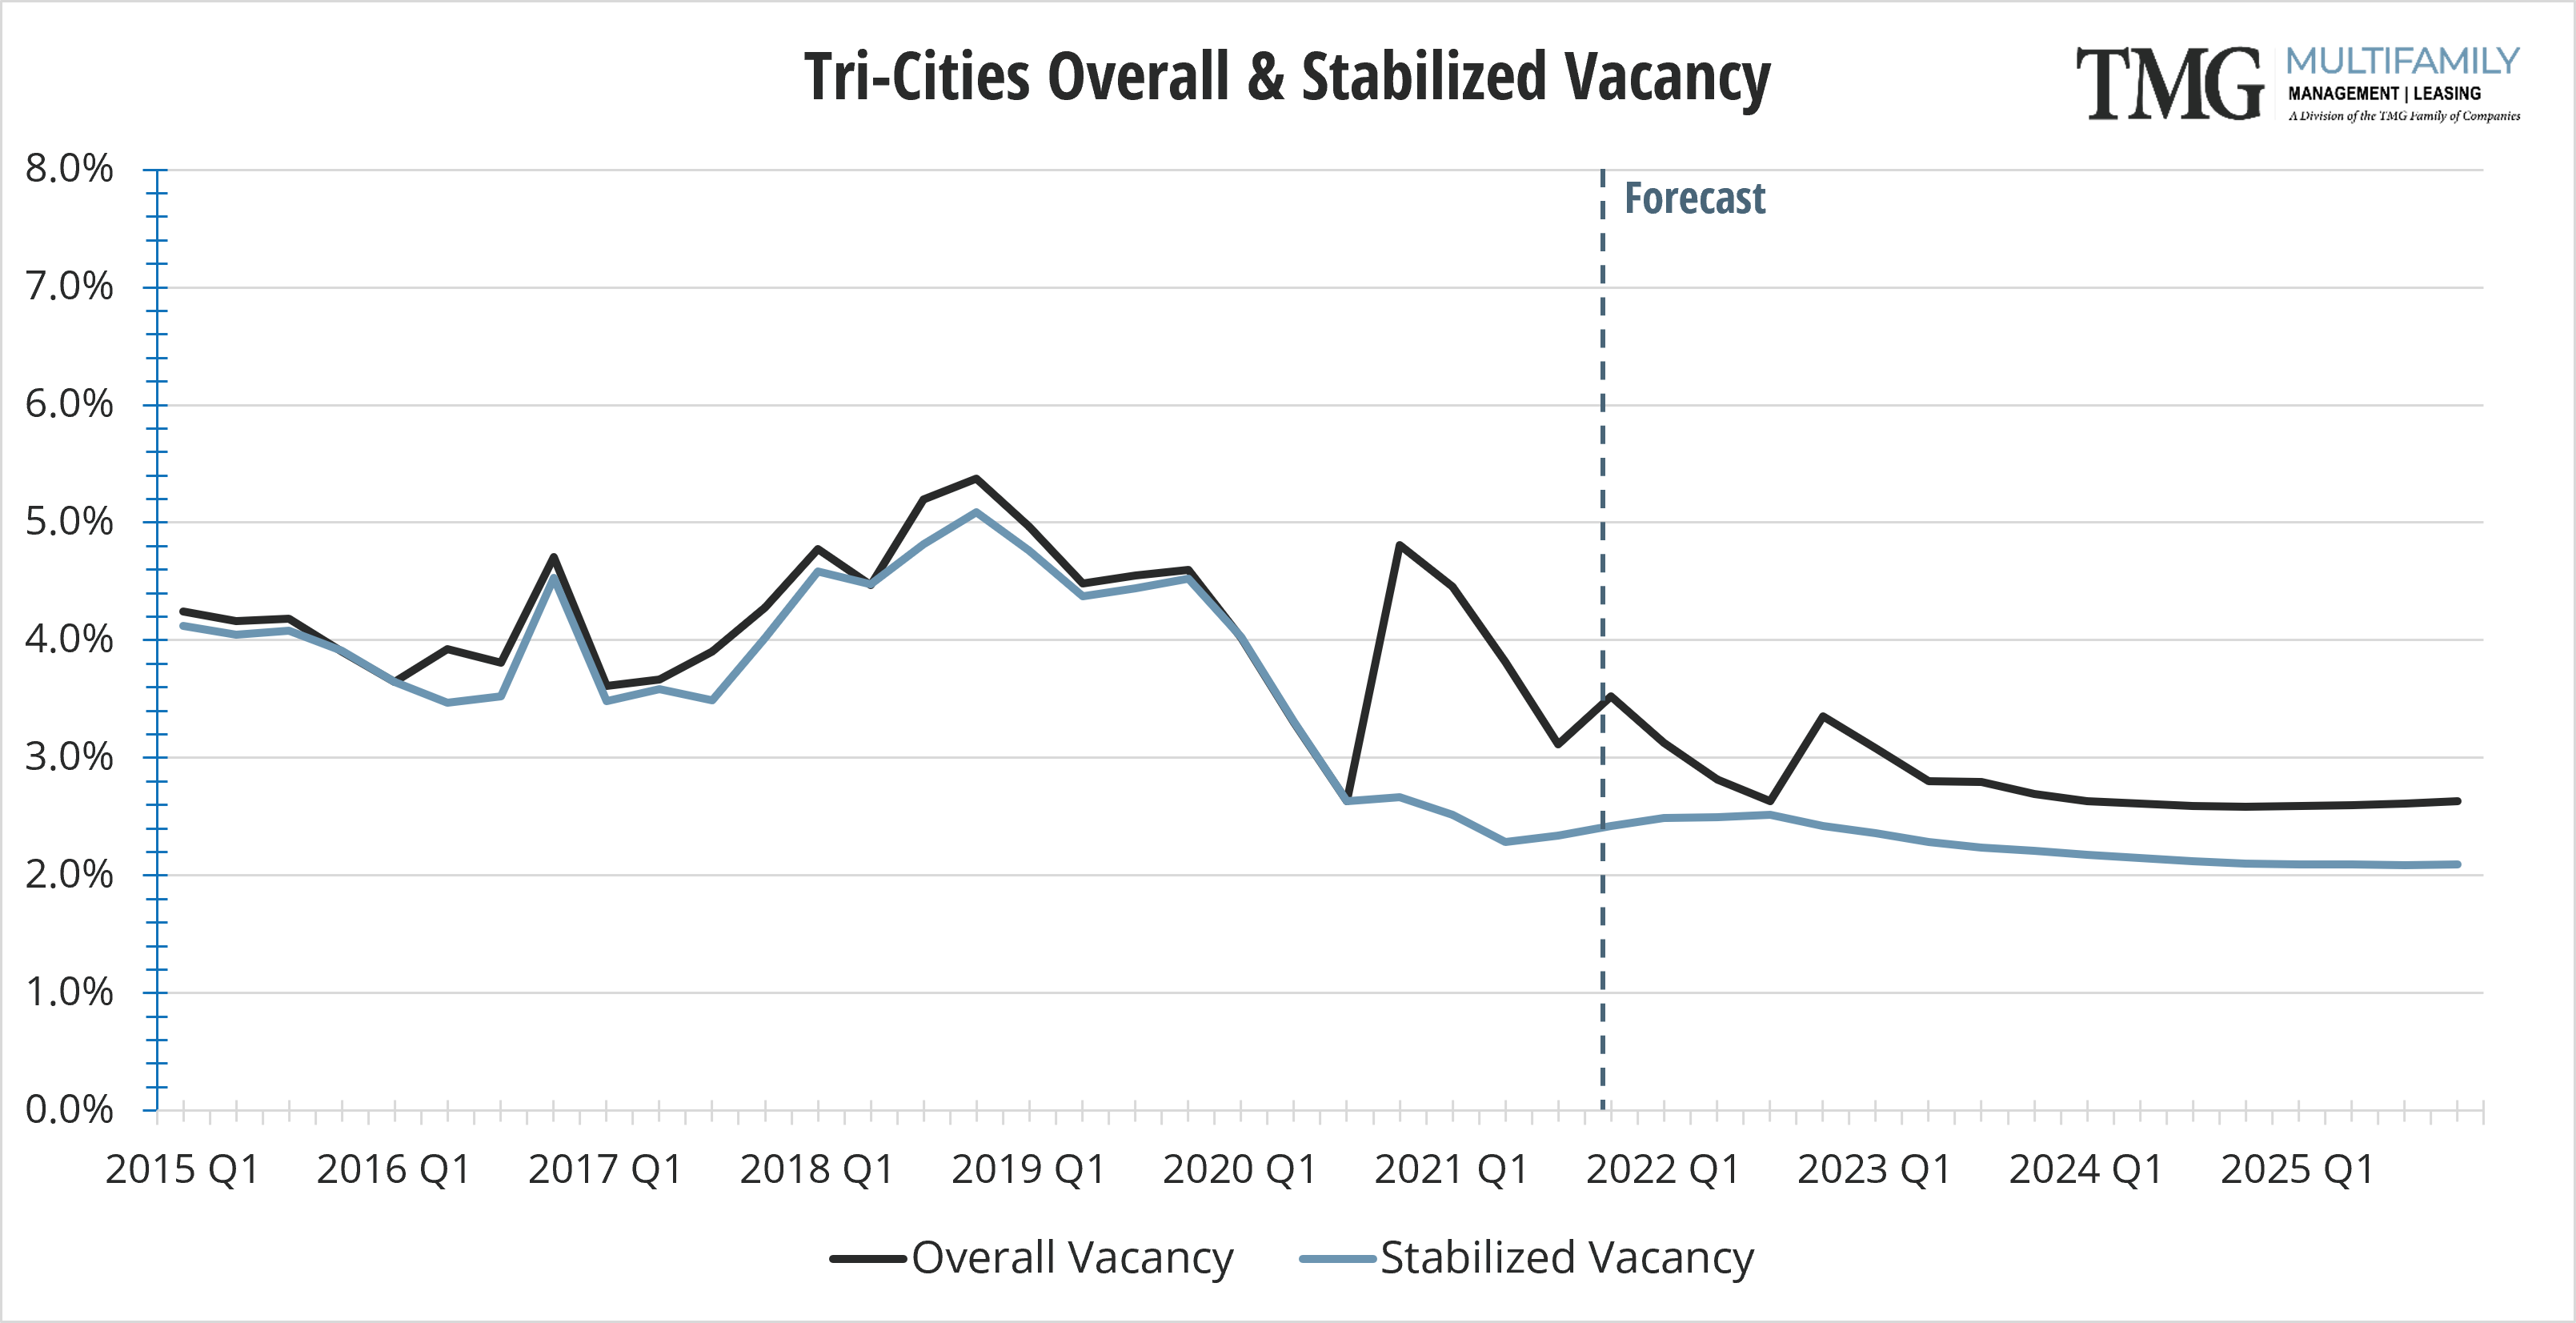 Tri-Cities Q4 Overall and Stabilized Vacancy